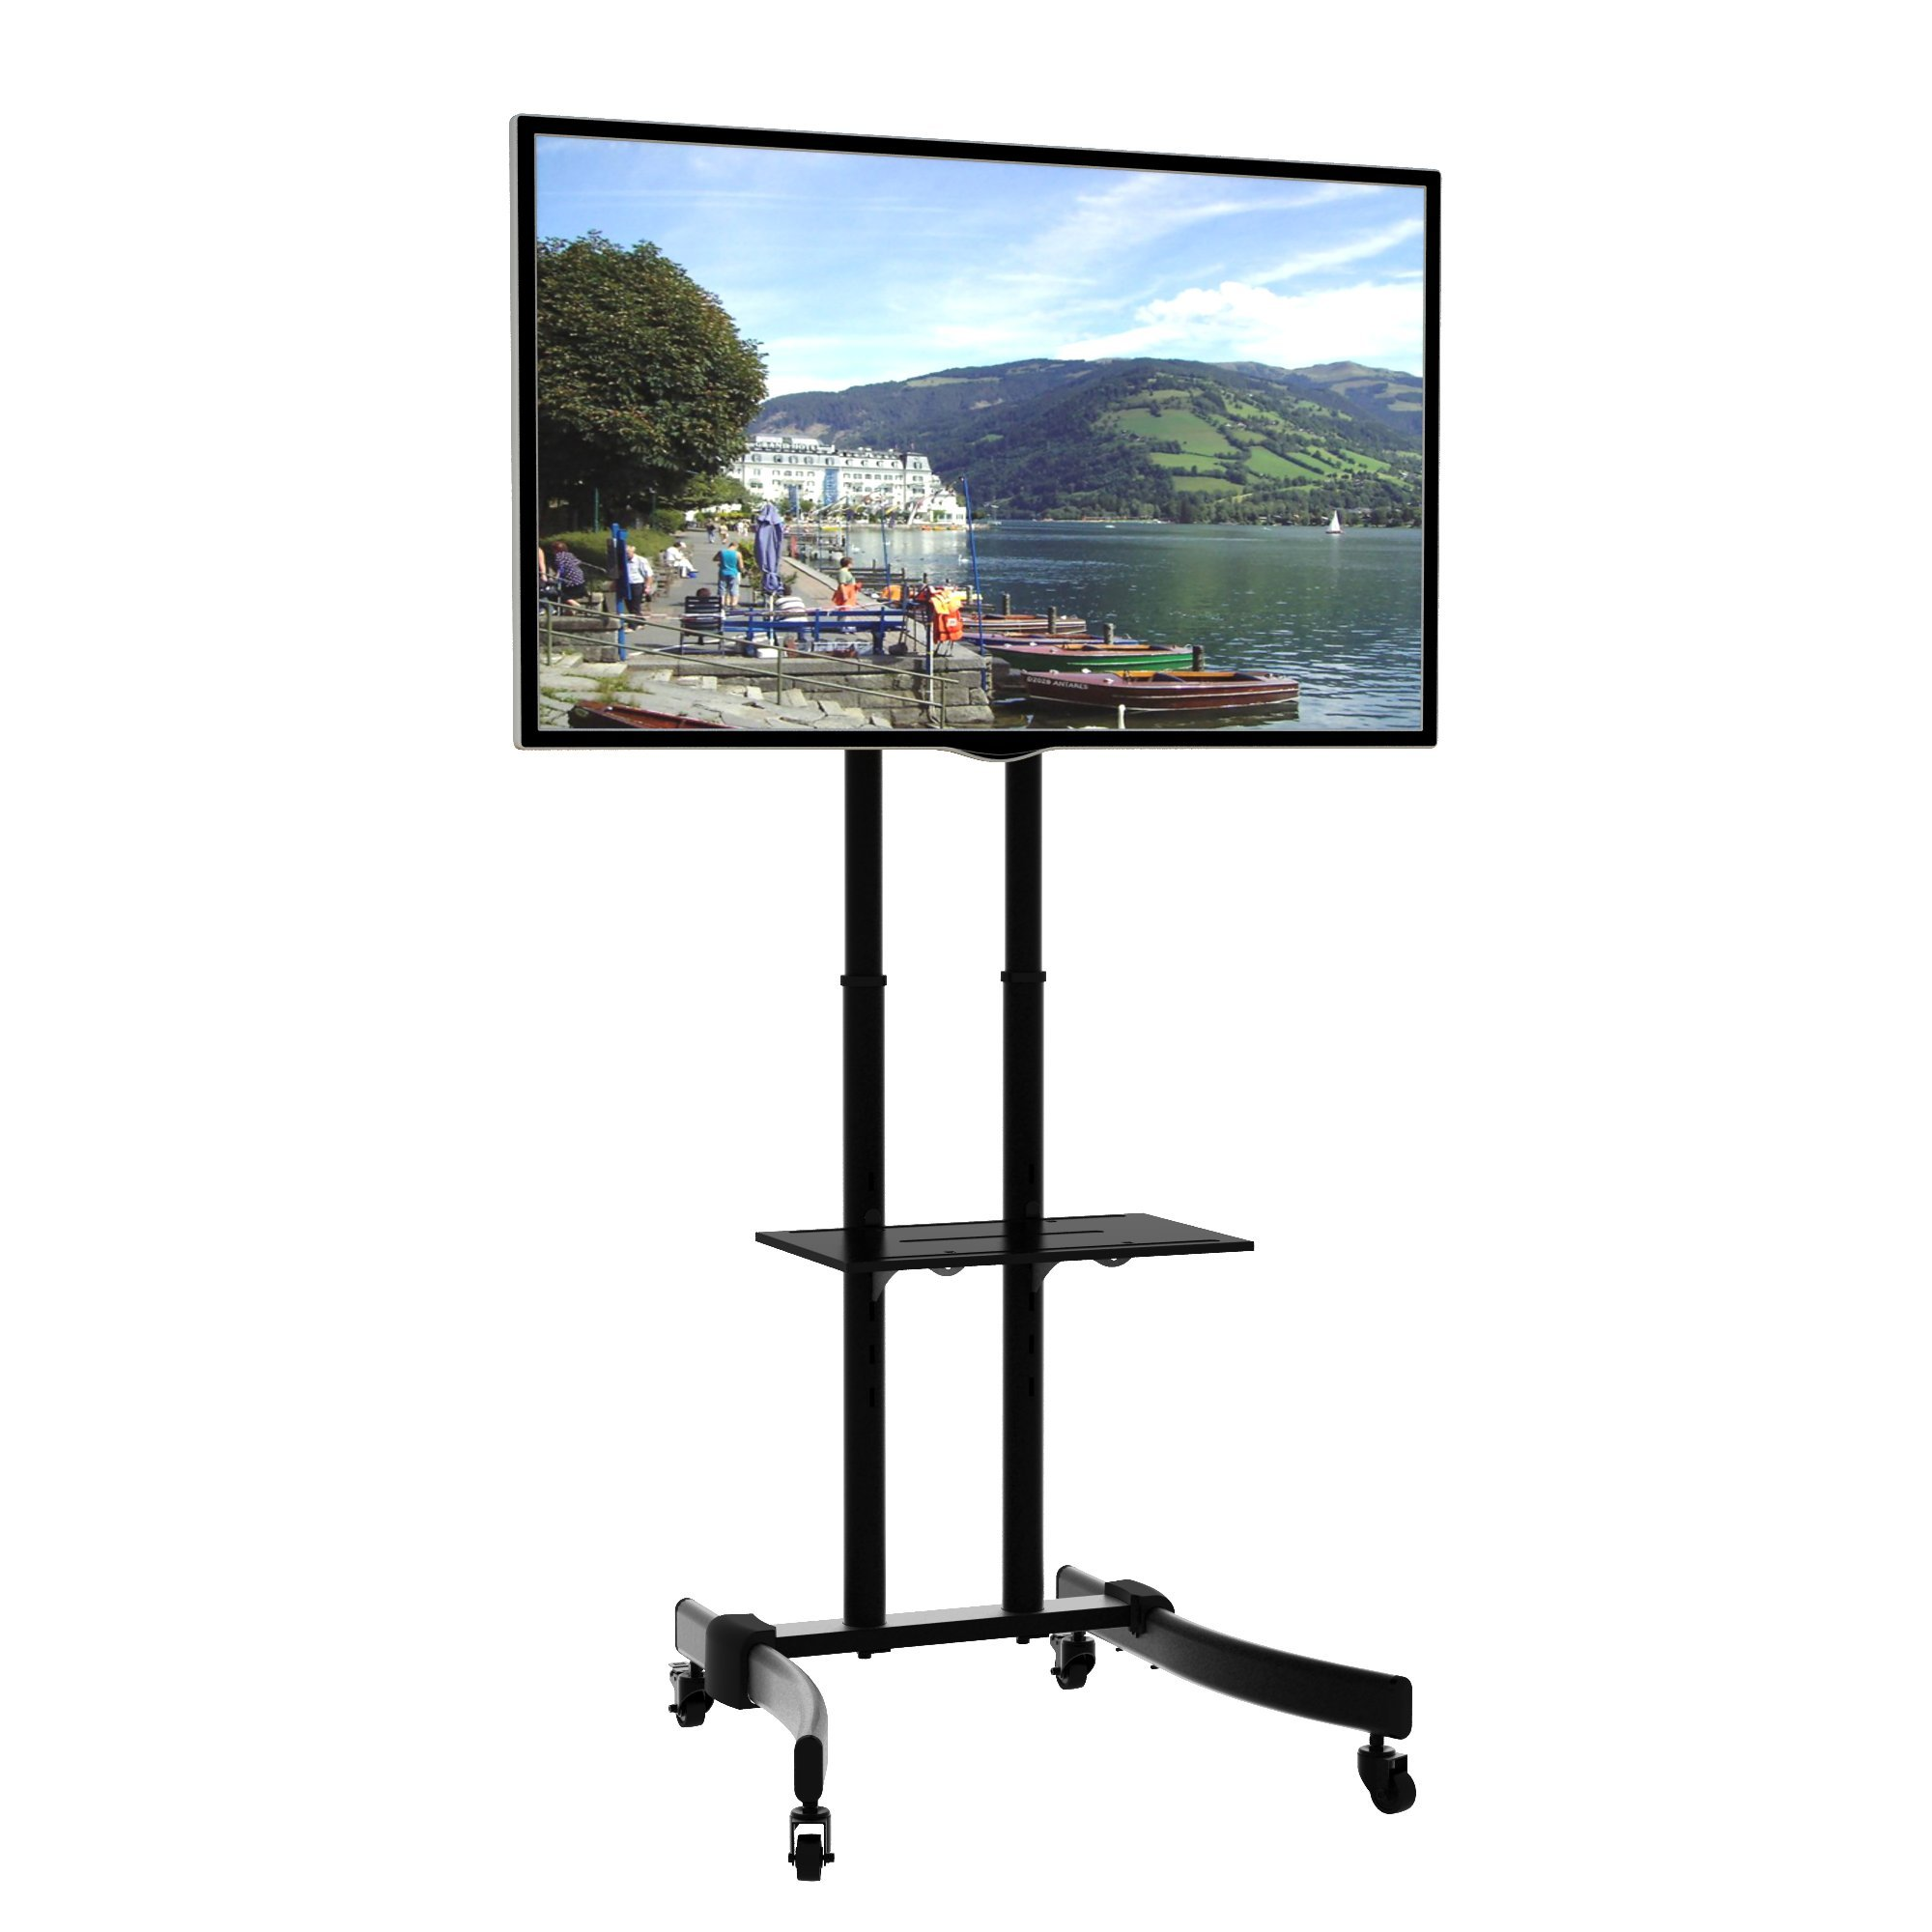 KRIEGER KMC370 Mobile TV Stand/Rolling monitor trolley with Adjustable shelf and flat screen mount – Fits 37″ to 70″ Monitors – Black